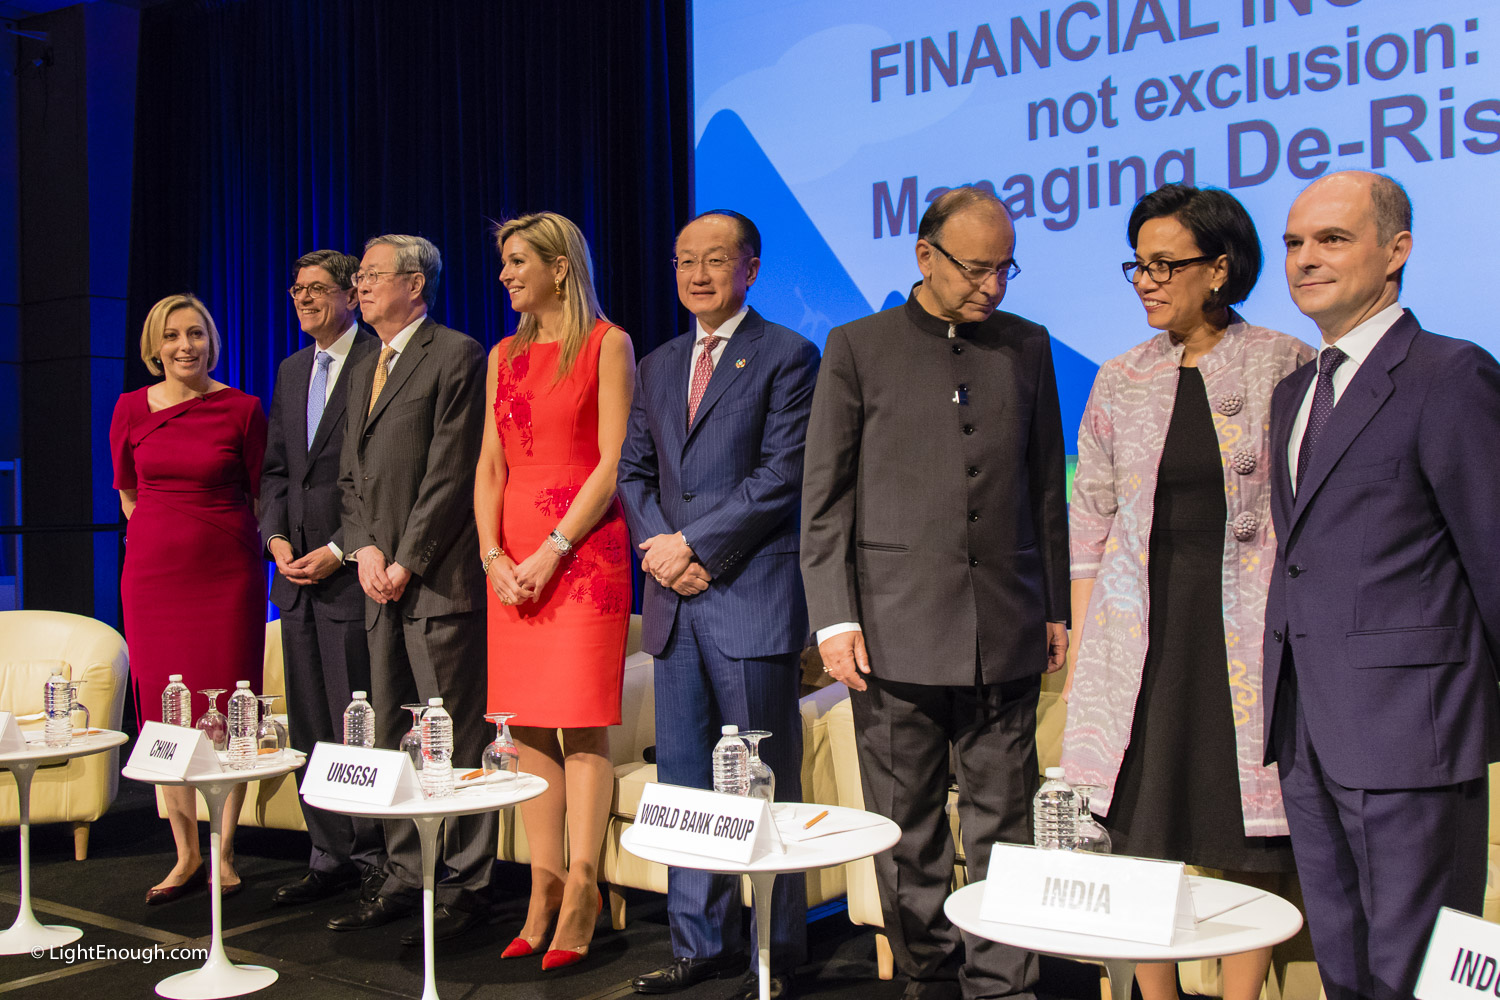 Financial Inclusion Panel Discussion